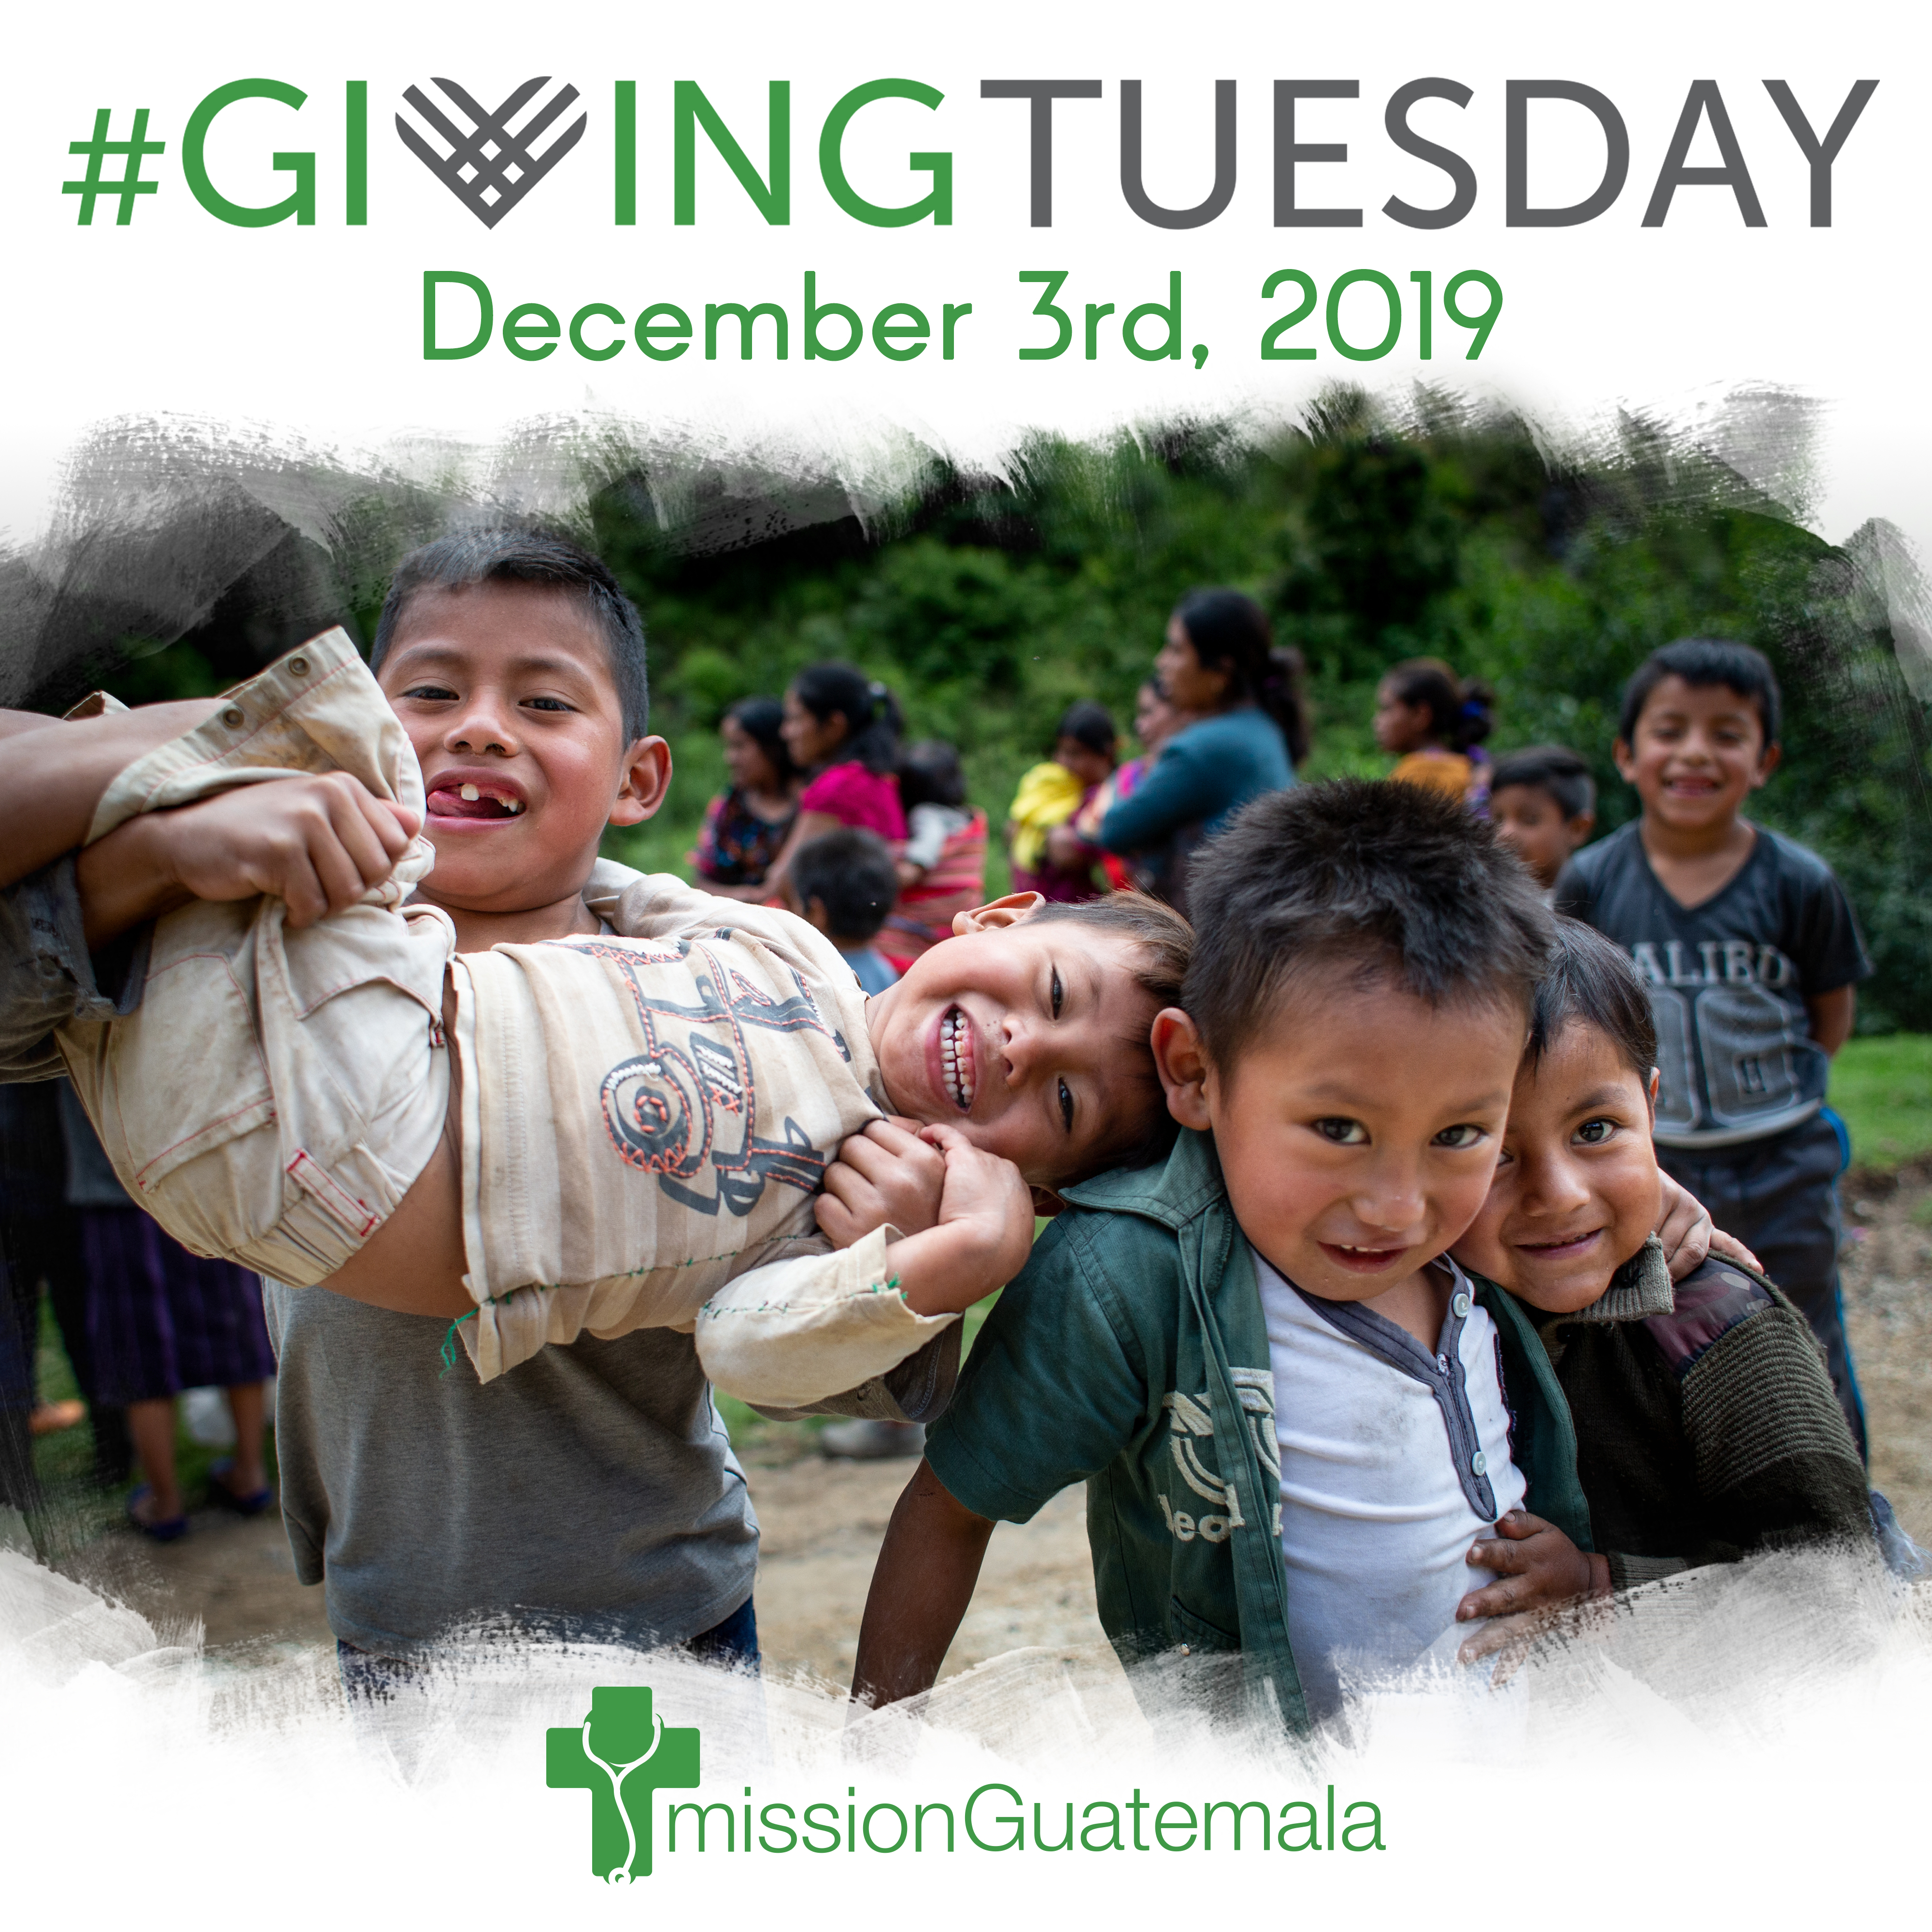 Double Your Impact This #GivingTuesday!